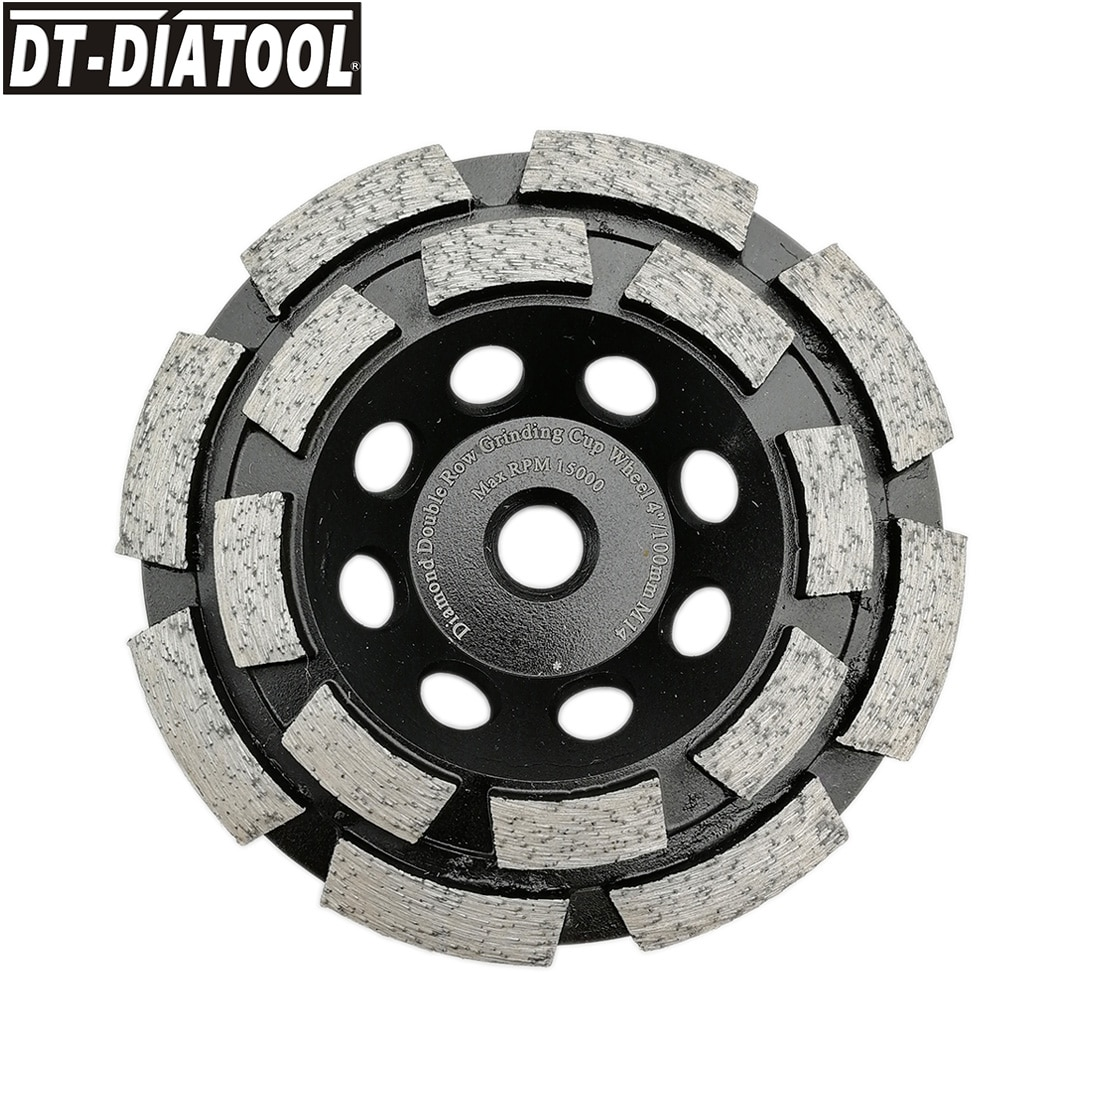 DT-DIATOOL 1pc M14 Thread Dia 100mm/4inch Diamond Double Row Cup Grinding Wheel For Concrete Brick Hard Stone Granite Marble